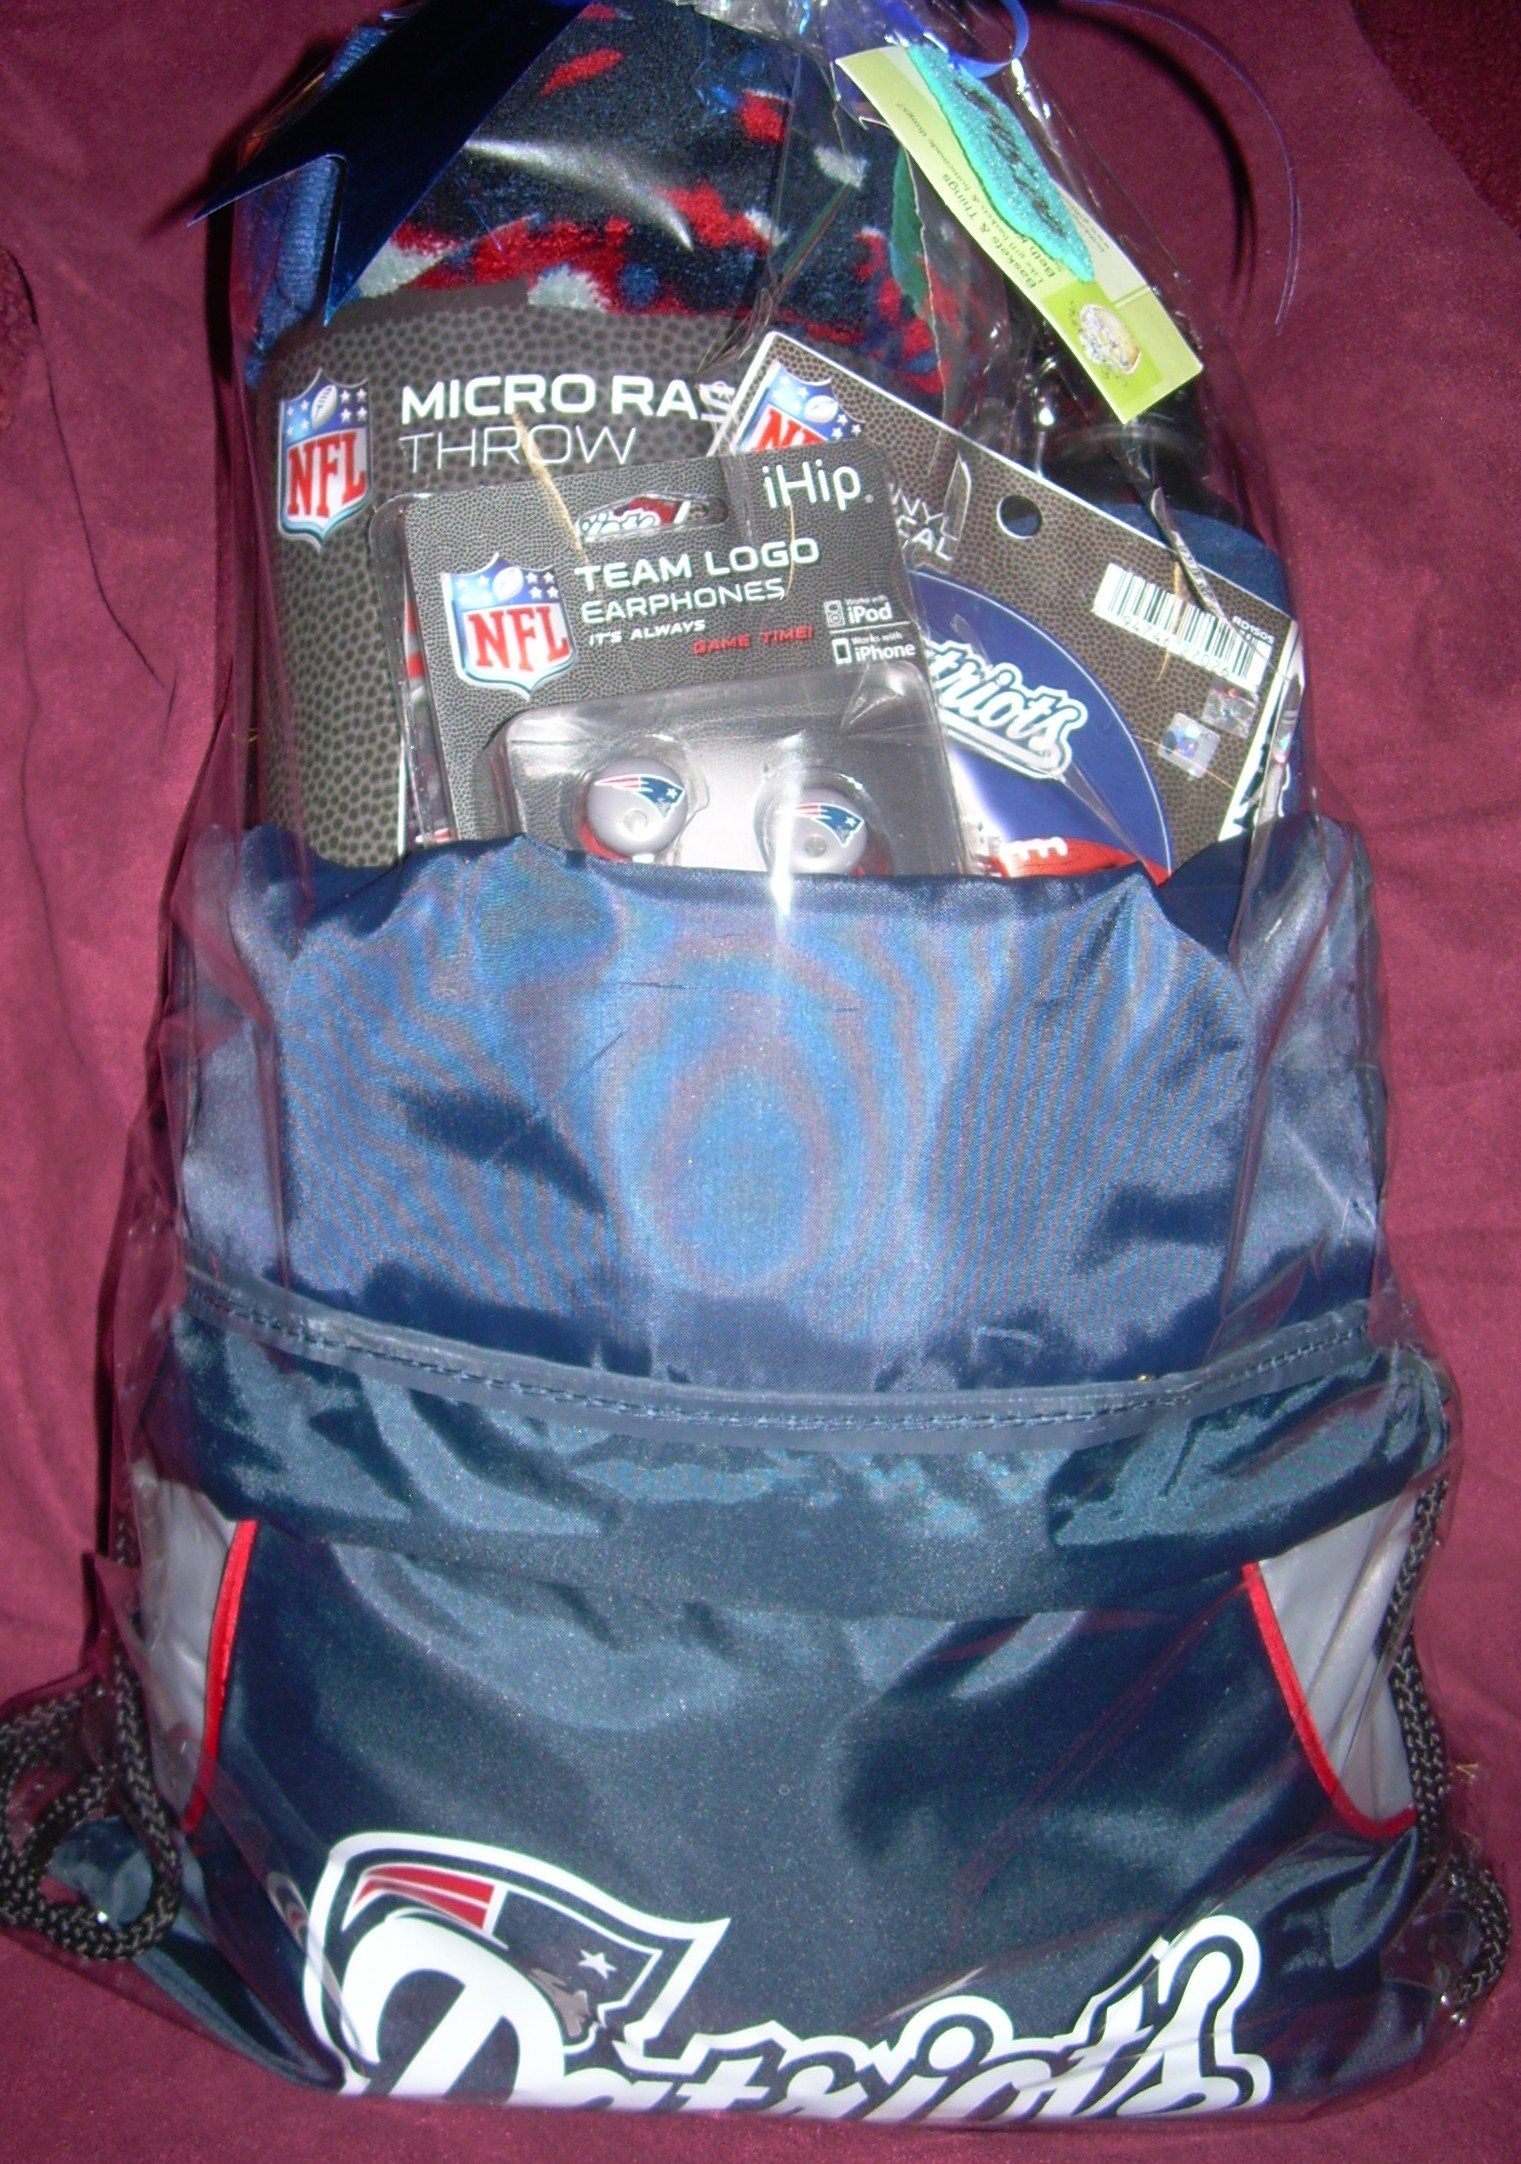 Great fathers day gifts patriots bag full of fun